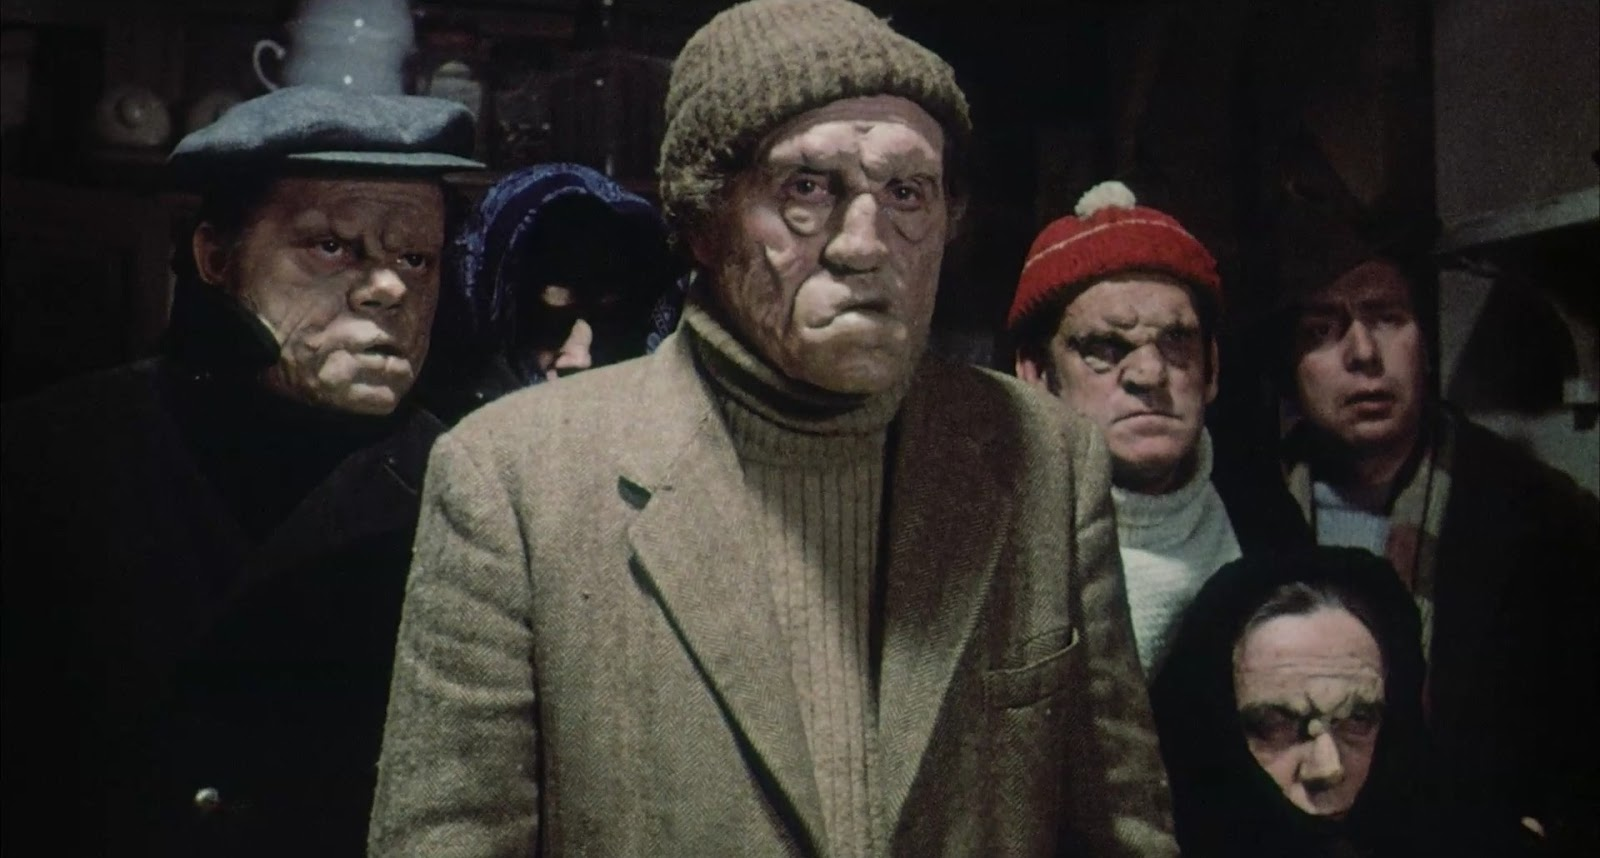 Villagers suffering from acromegaly in Doomwatch (1972)